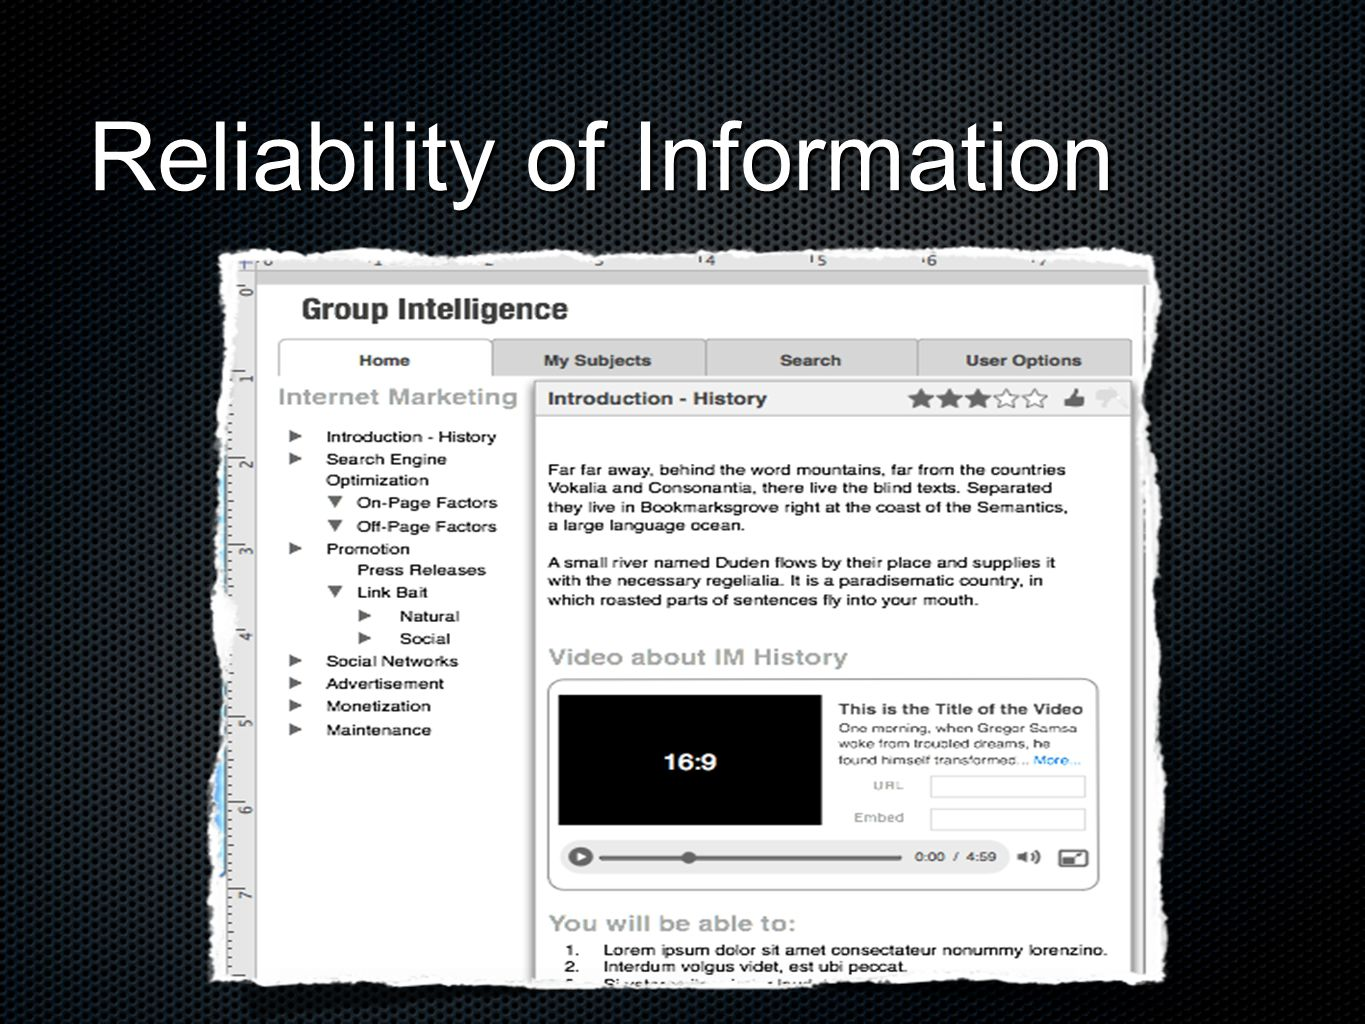 Reliability of Information